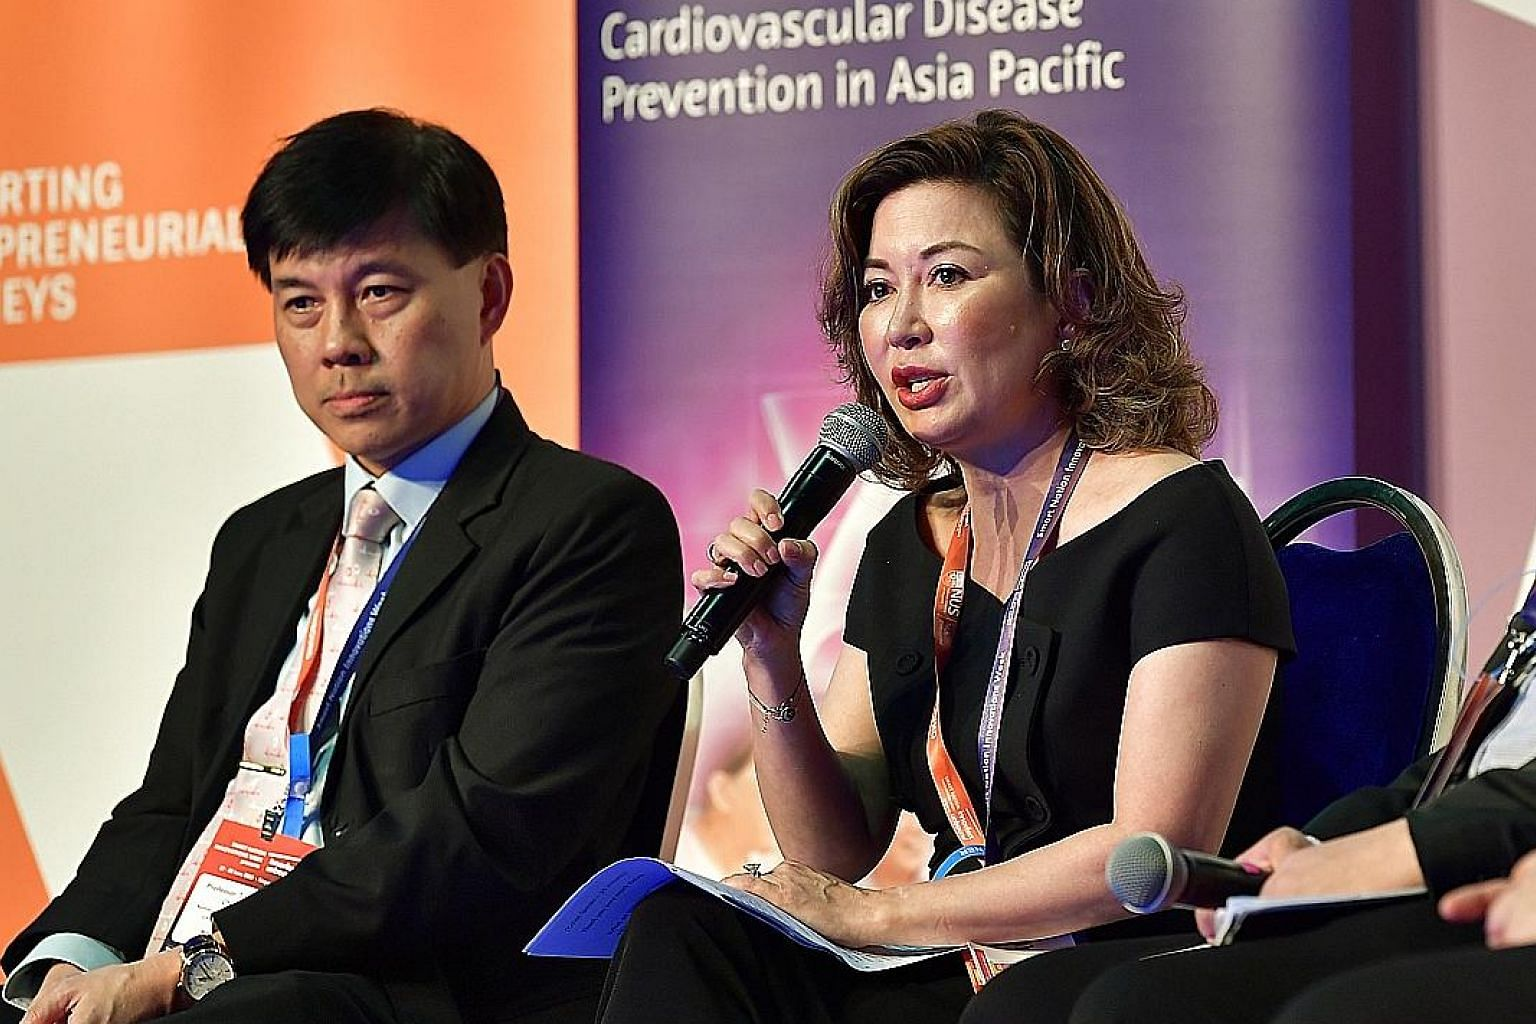 Associate Professor Angelique Chan, executive director of the Centre for Ageing, Research and Education at Duke-NUS Medical School, speaking at the Healthy Hearts, Healthy Ageing Asia Pacific Report launch. With her is National University Heart Centr